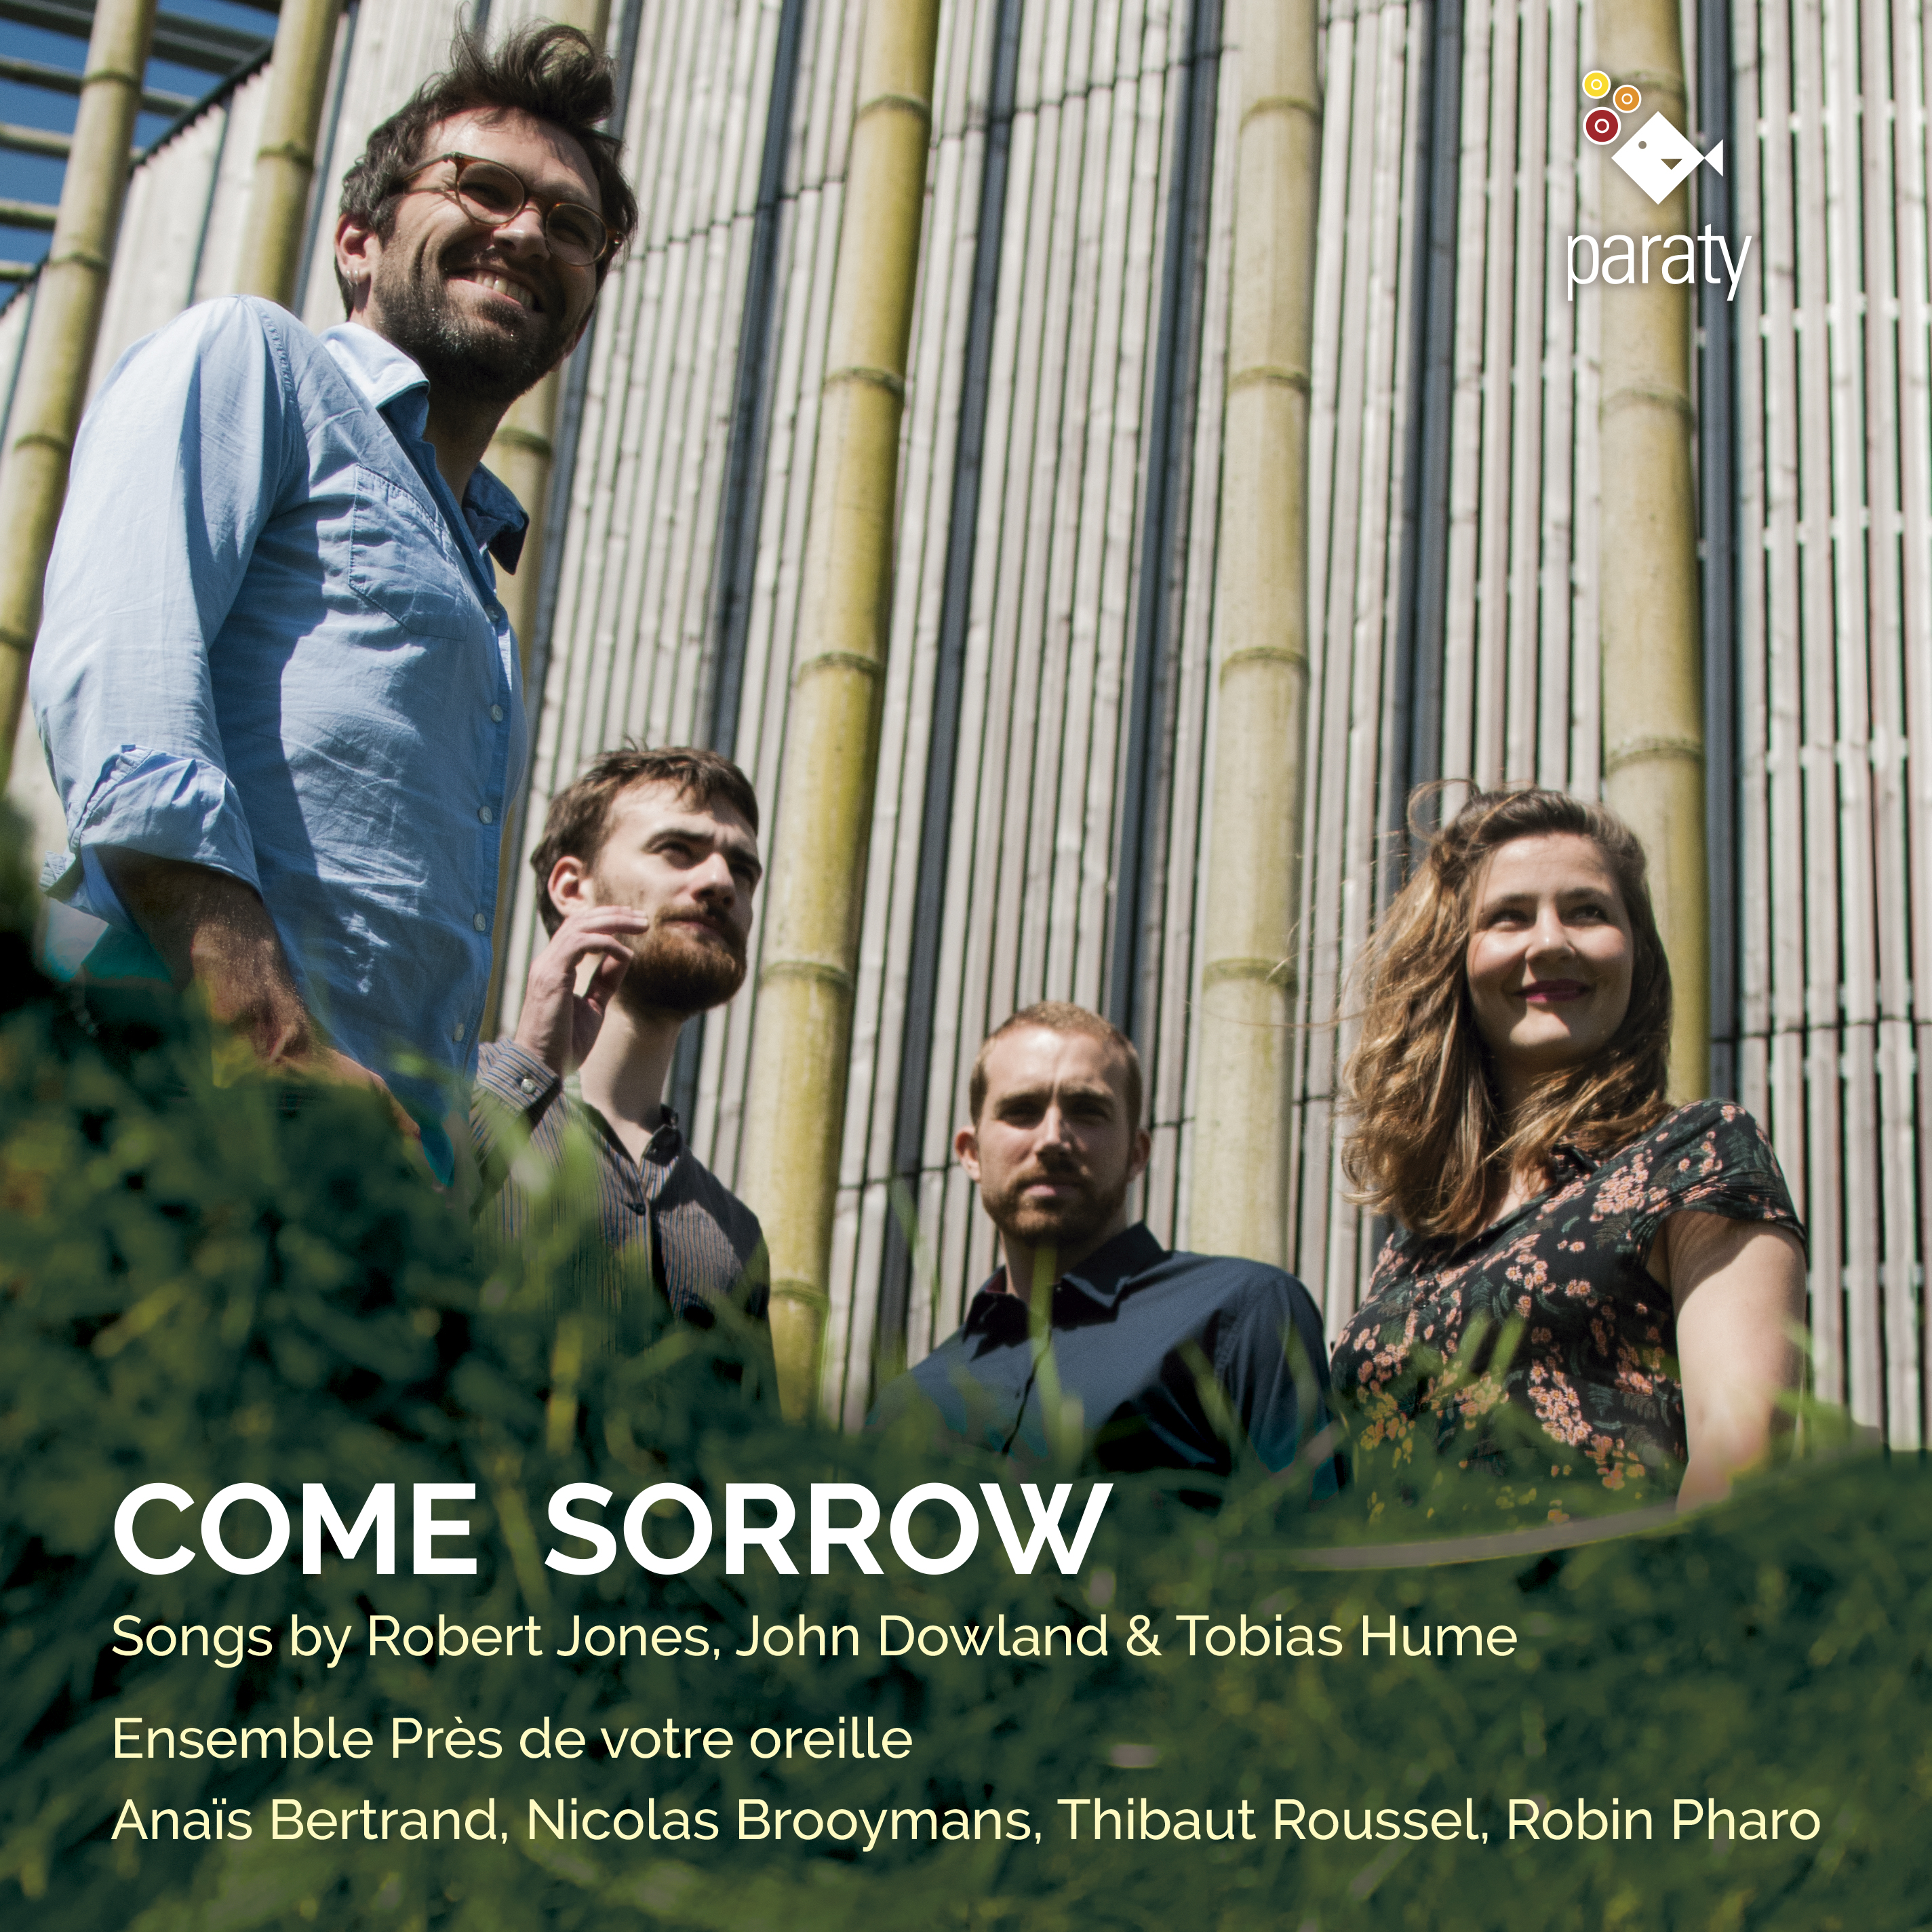 Come Sorrow, Songs by Robert Jones, Johan Dowland & Tobias Hume